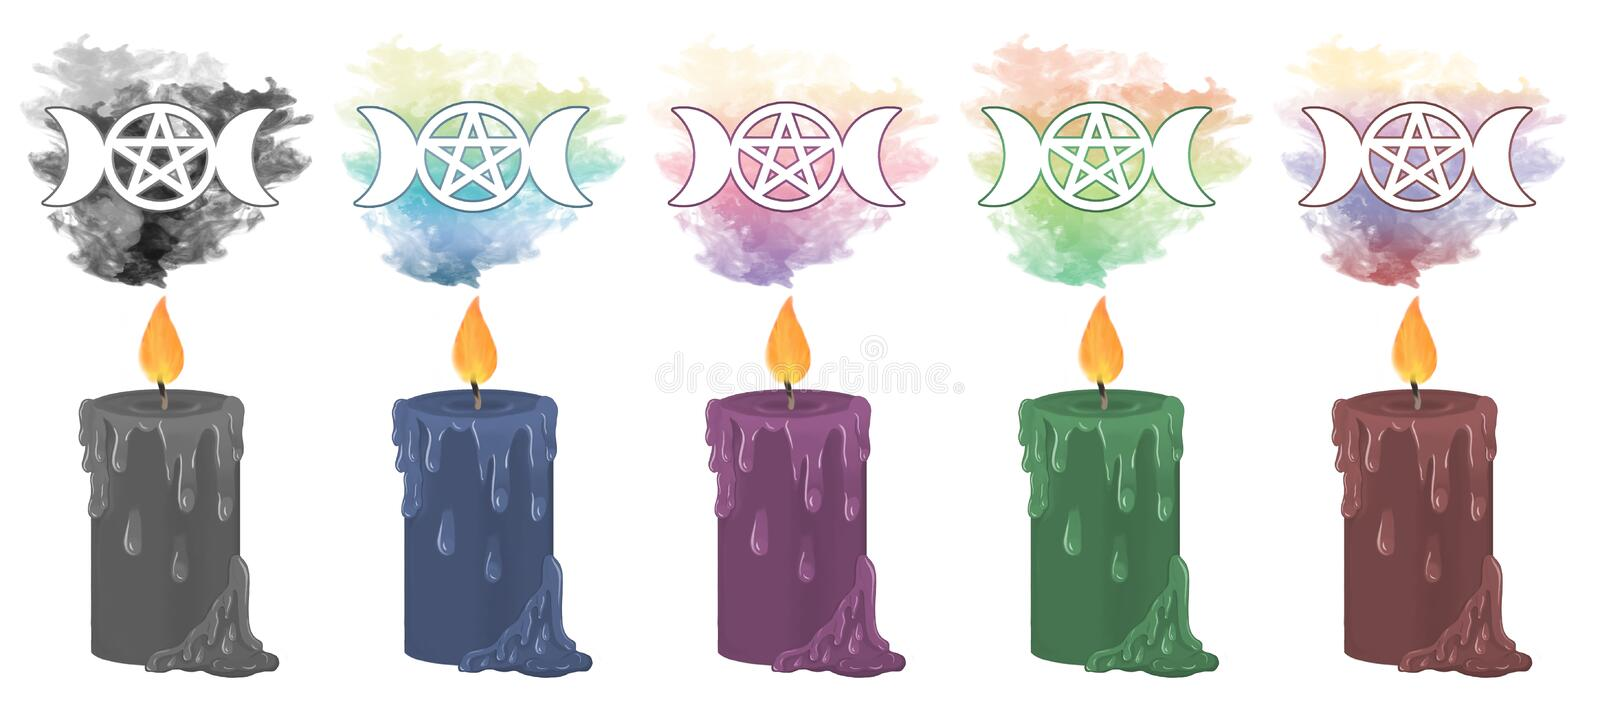 Pagan Goddess Symbol candles. Colourful smoke rising from decorative candles with the goddess symbol floating in the smoke above vector illustration